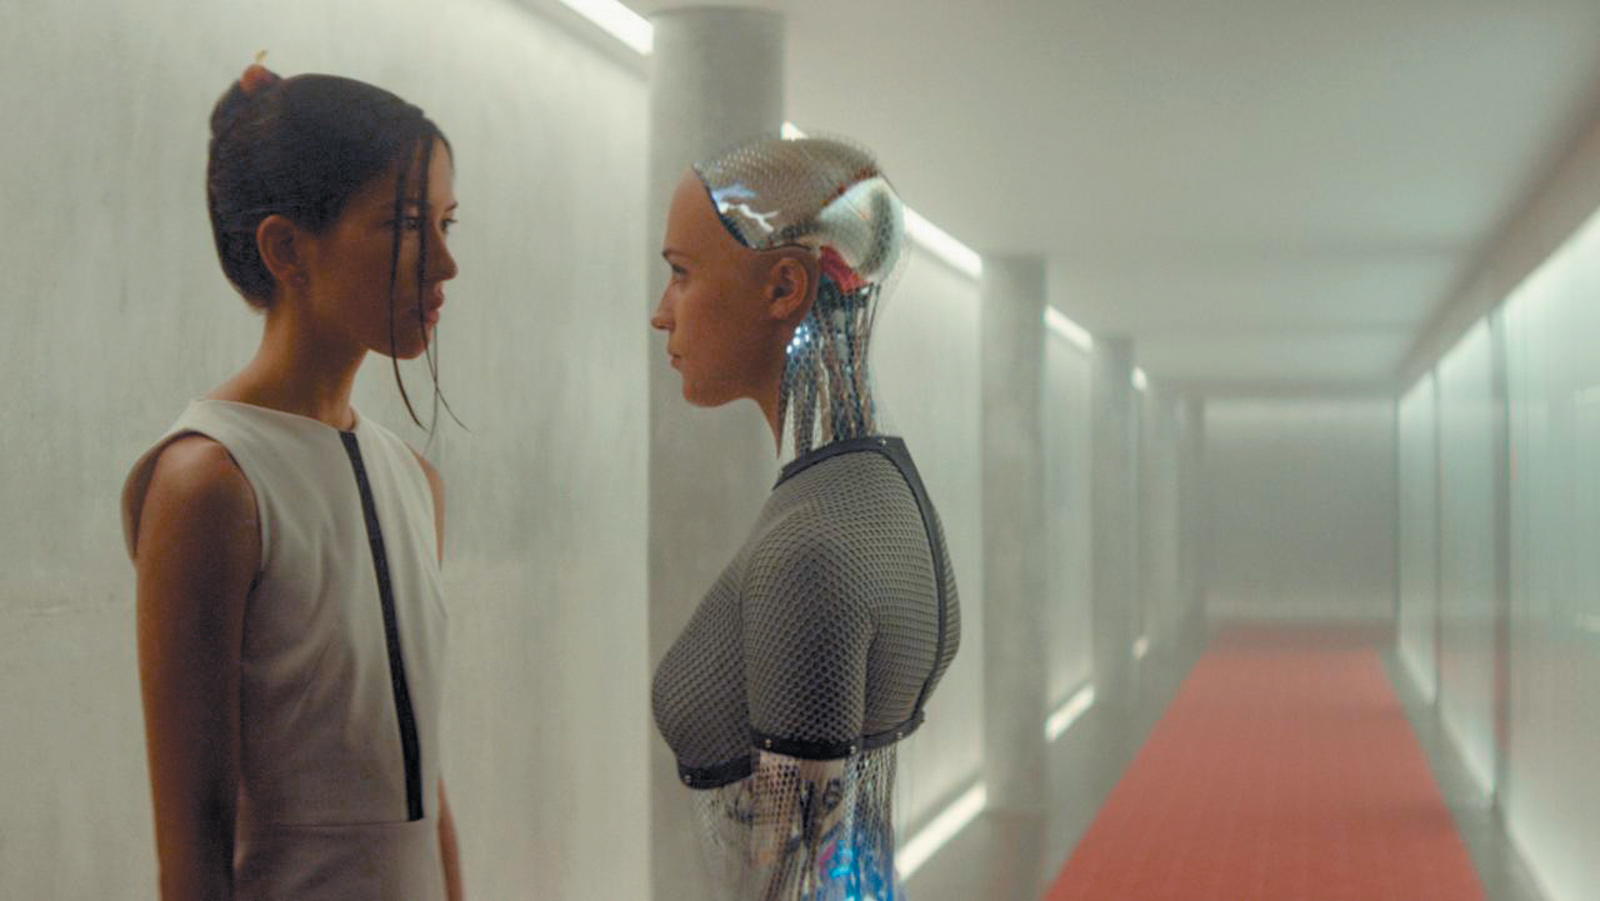 Sonoya Mizuno and Alicia Vikander in Alex Garland's film Ex Machina, 2015